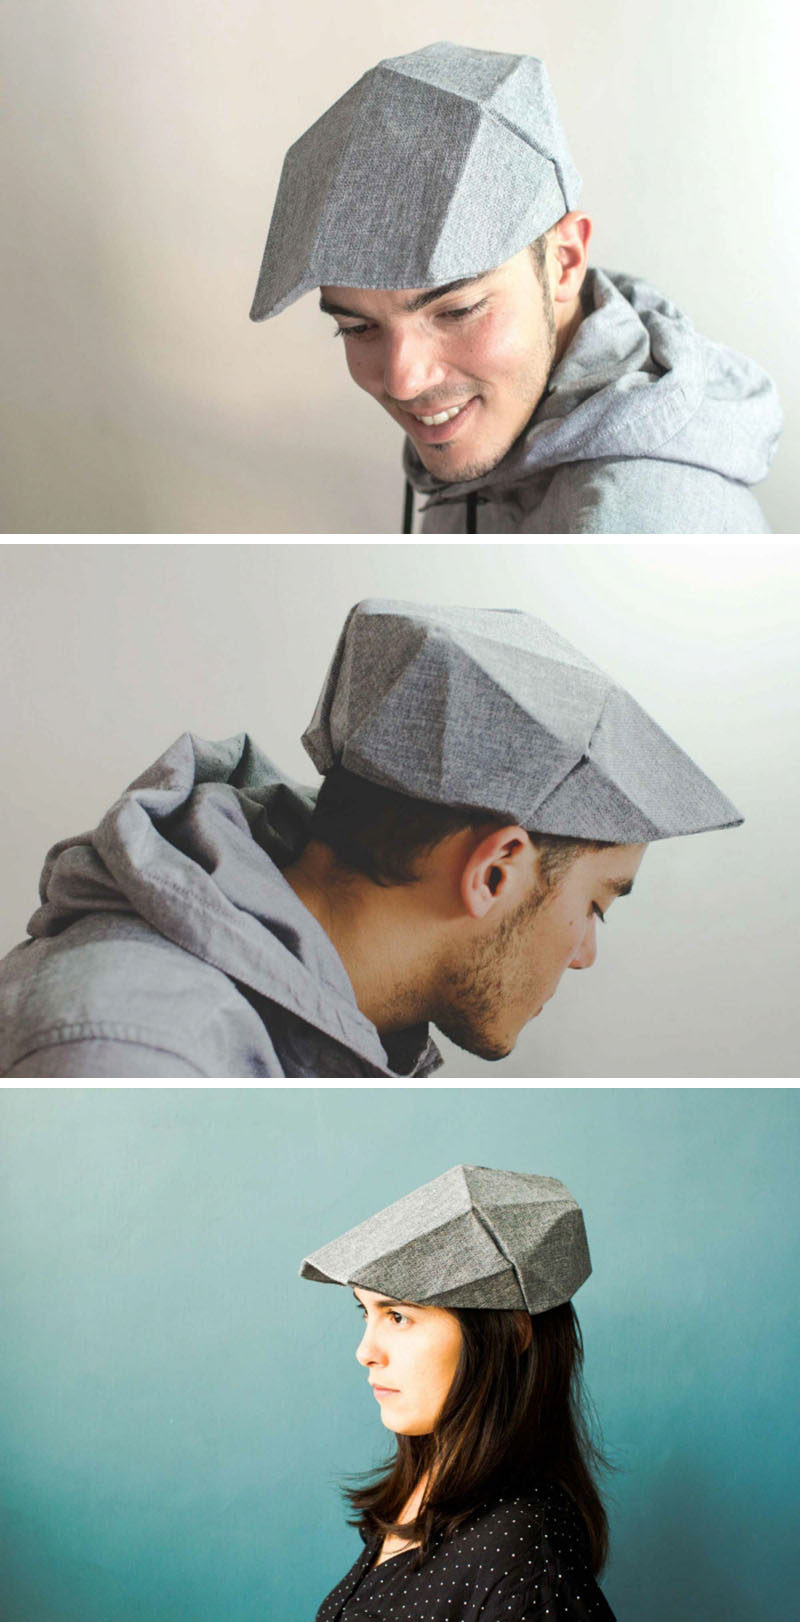 This cap puts a spin on the traditional golf cap or newsboy hat and gives it a more geometric look inspired by origami.